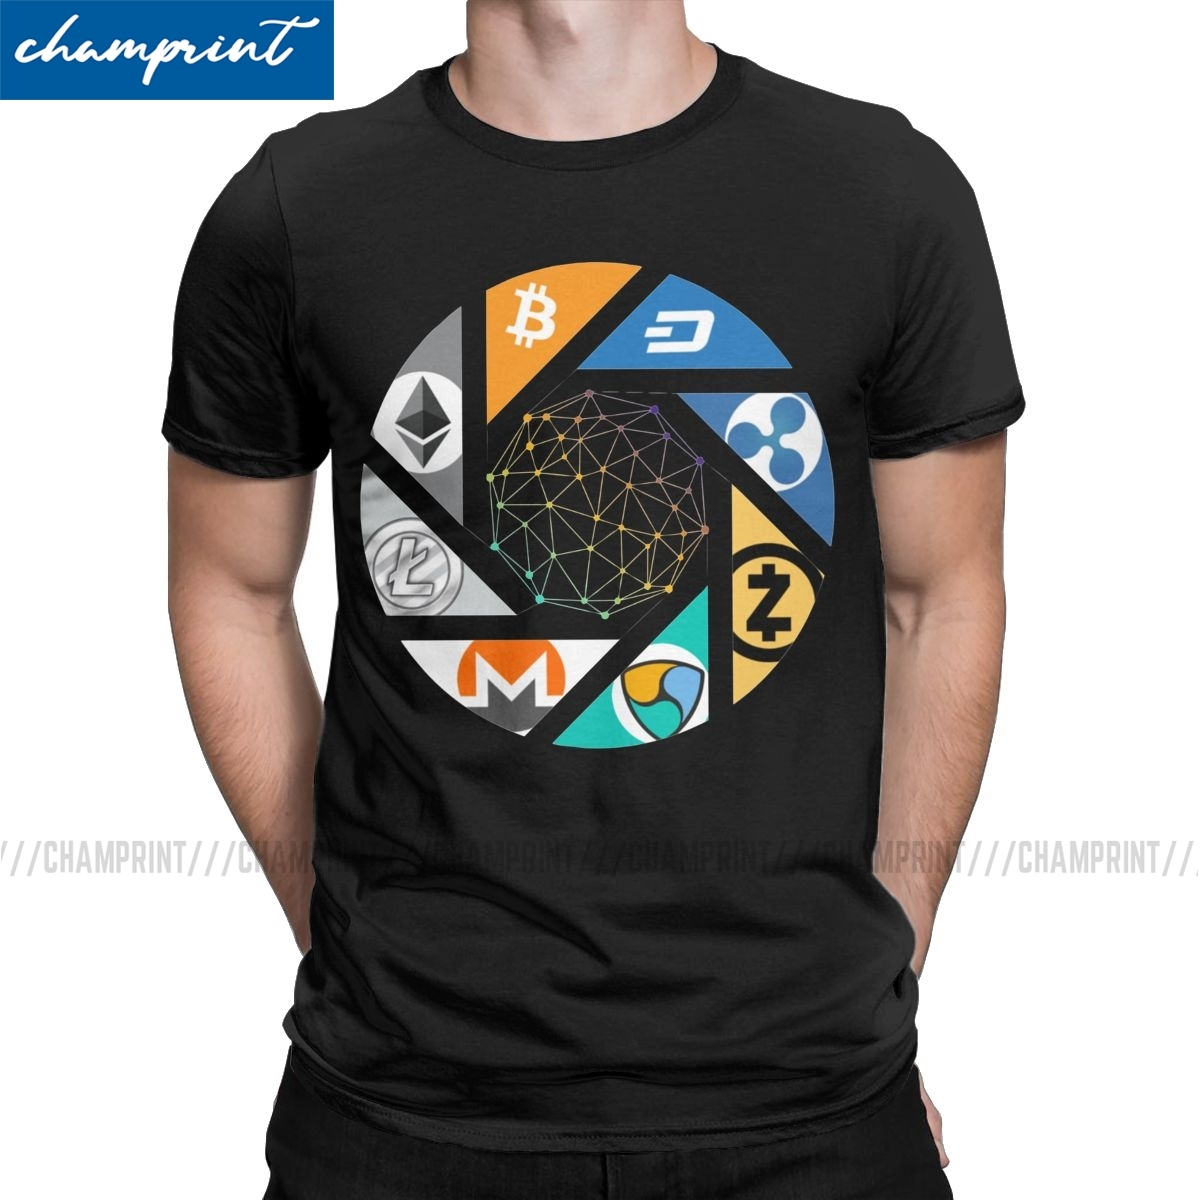 The New World T-Shirts Men Bitcoin Cryptocurrency Crypto Btc Blockchain Geek Vintage Tees Short Sleeve T Shirt Gift Clothes 1